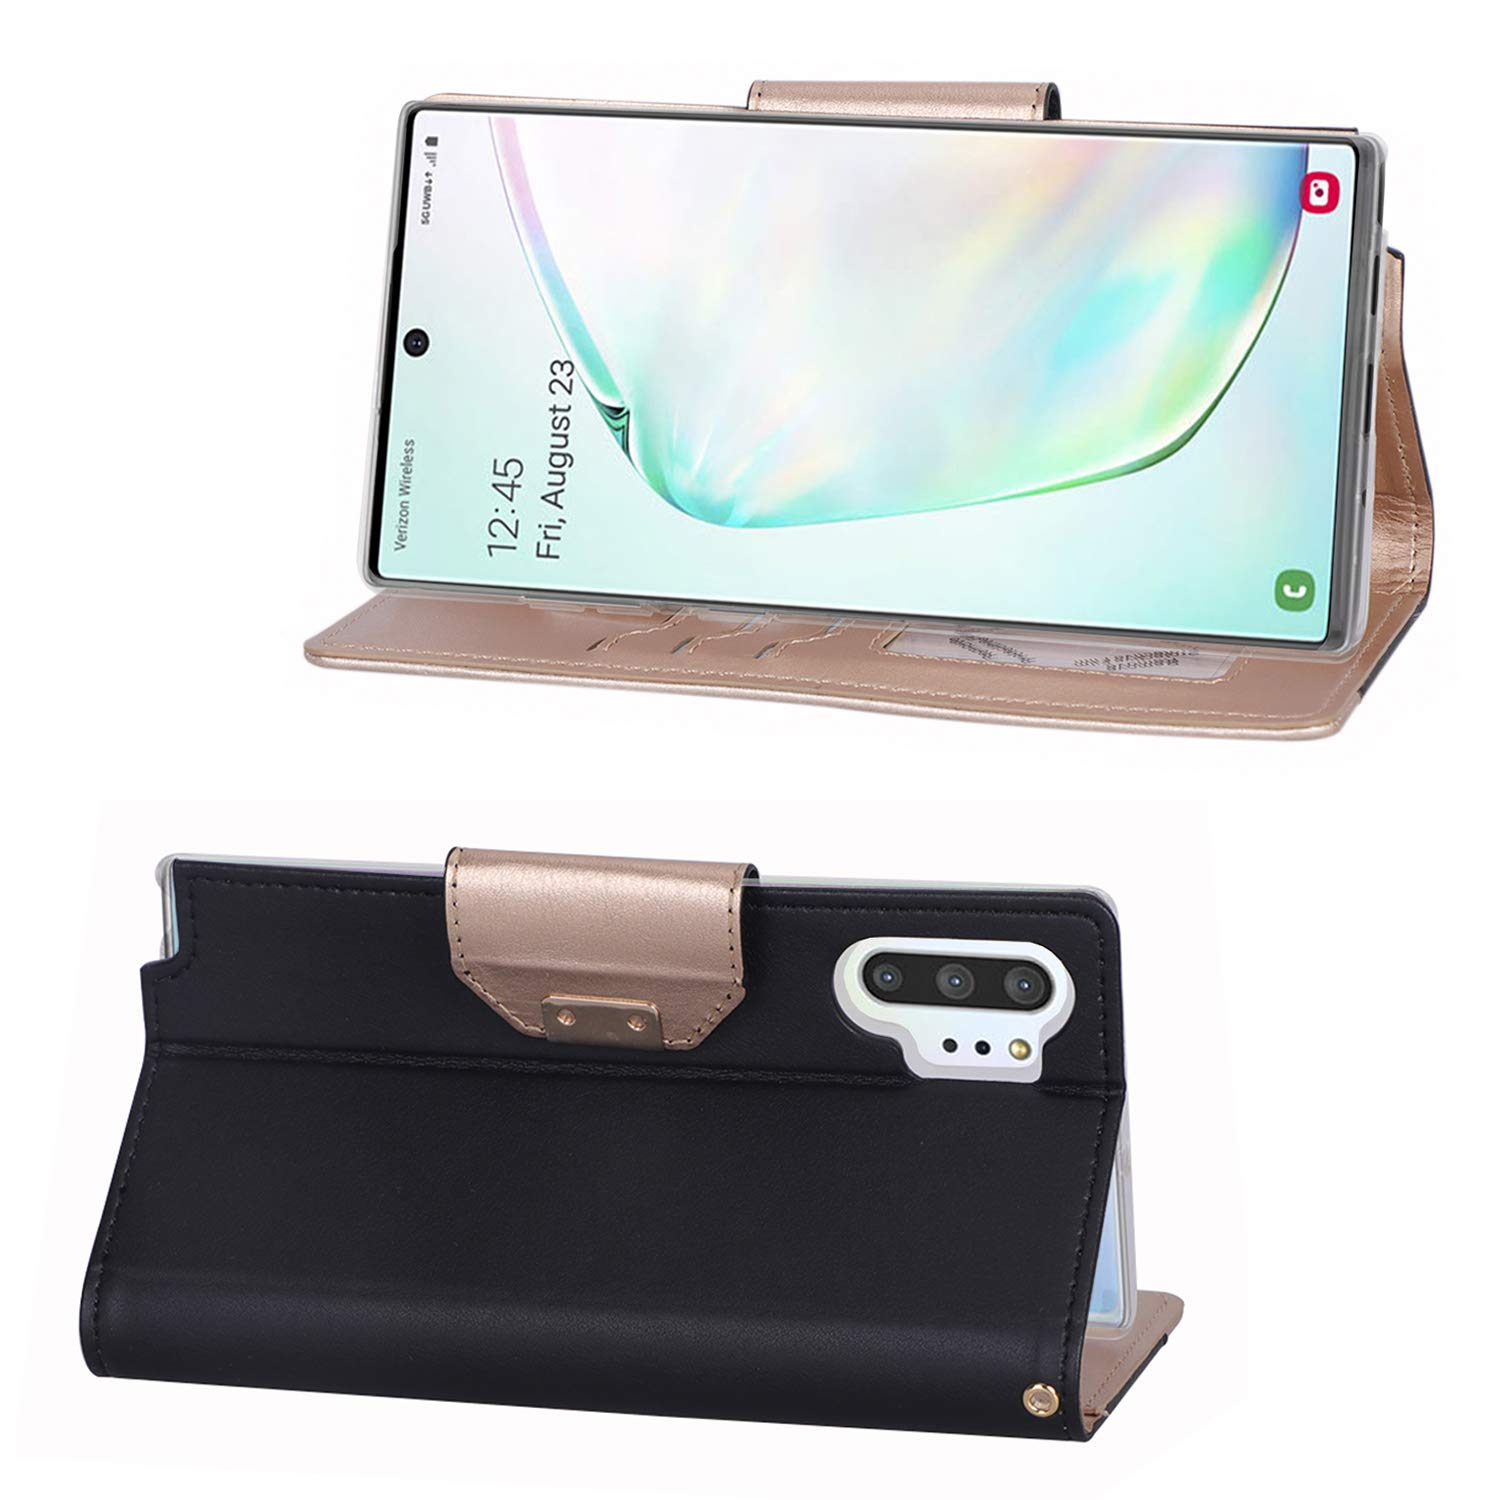 2019 Release Black Folding Stand Protective Book Case Cover for Samsung Galaxy Note 10+ Plus//5G Flip Fold Kickstand Case with Card Holders Mirror ProCase Galaxy Note 10+ Plus//5G Wallet Case